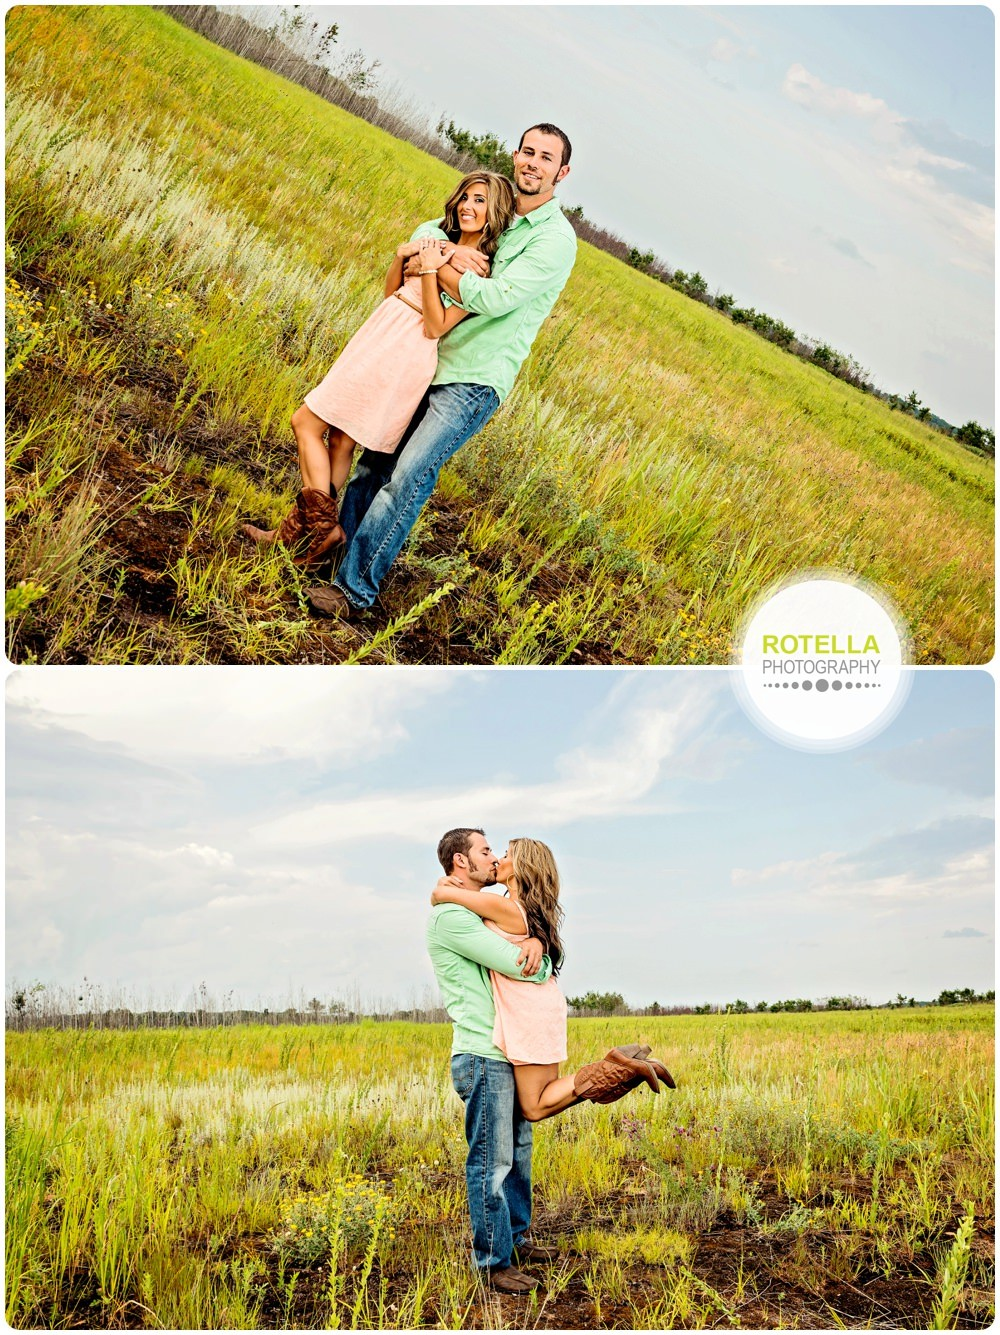 Minnesota Wedding Photography - Rotella Photography